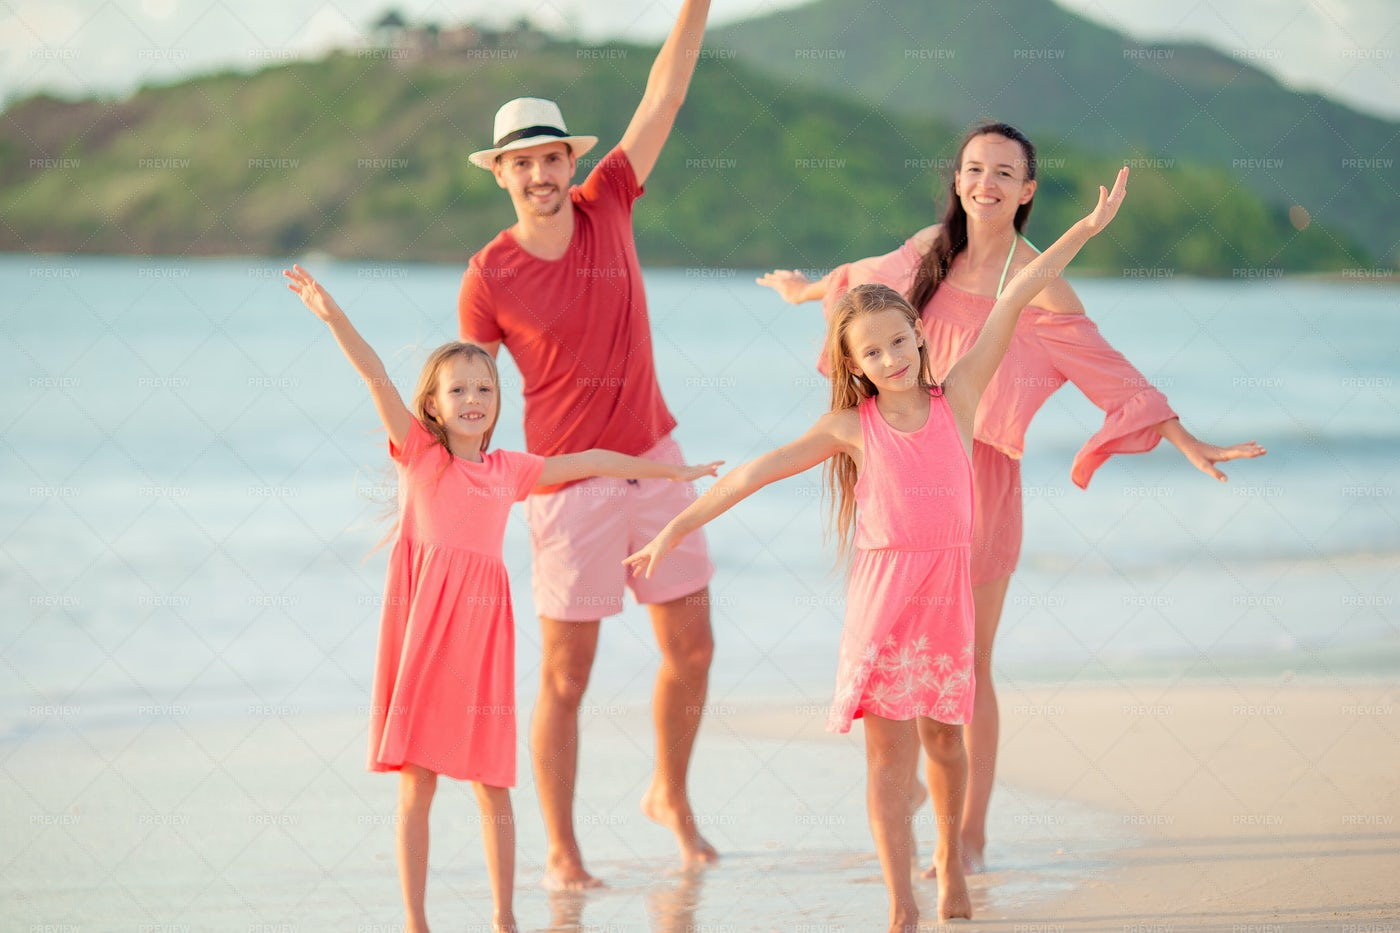 Happy Family With Kids On The Beach: Stock Photos